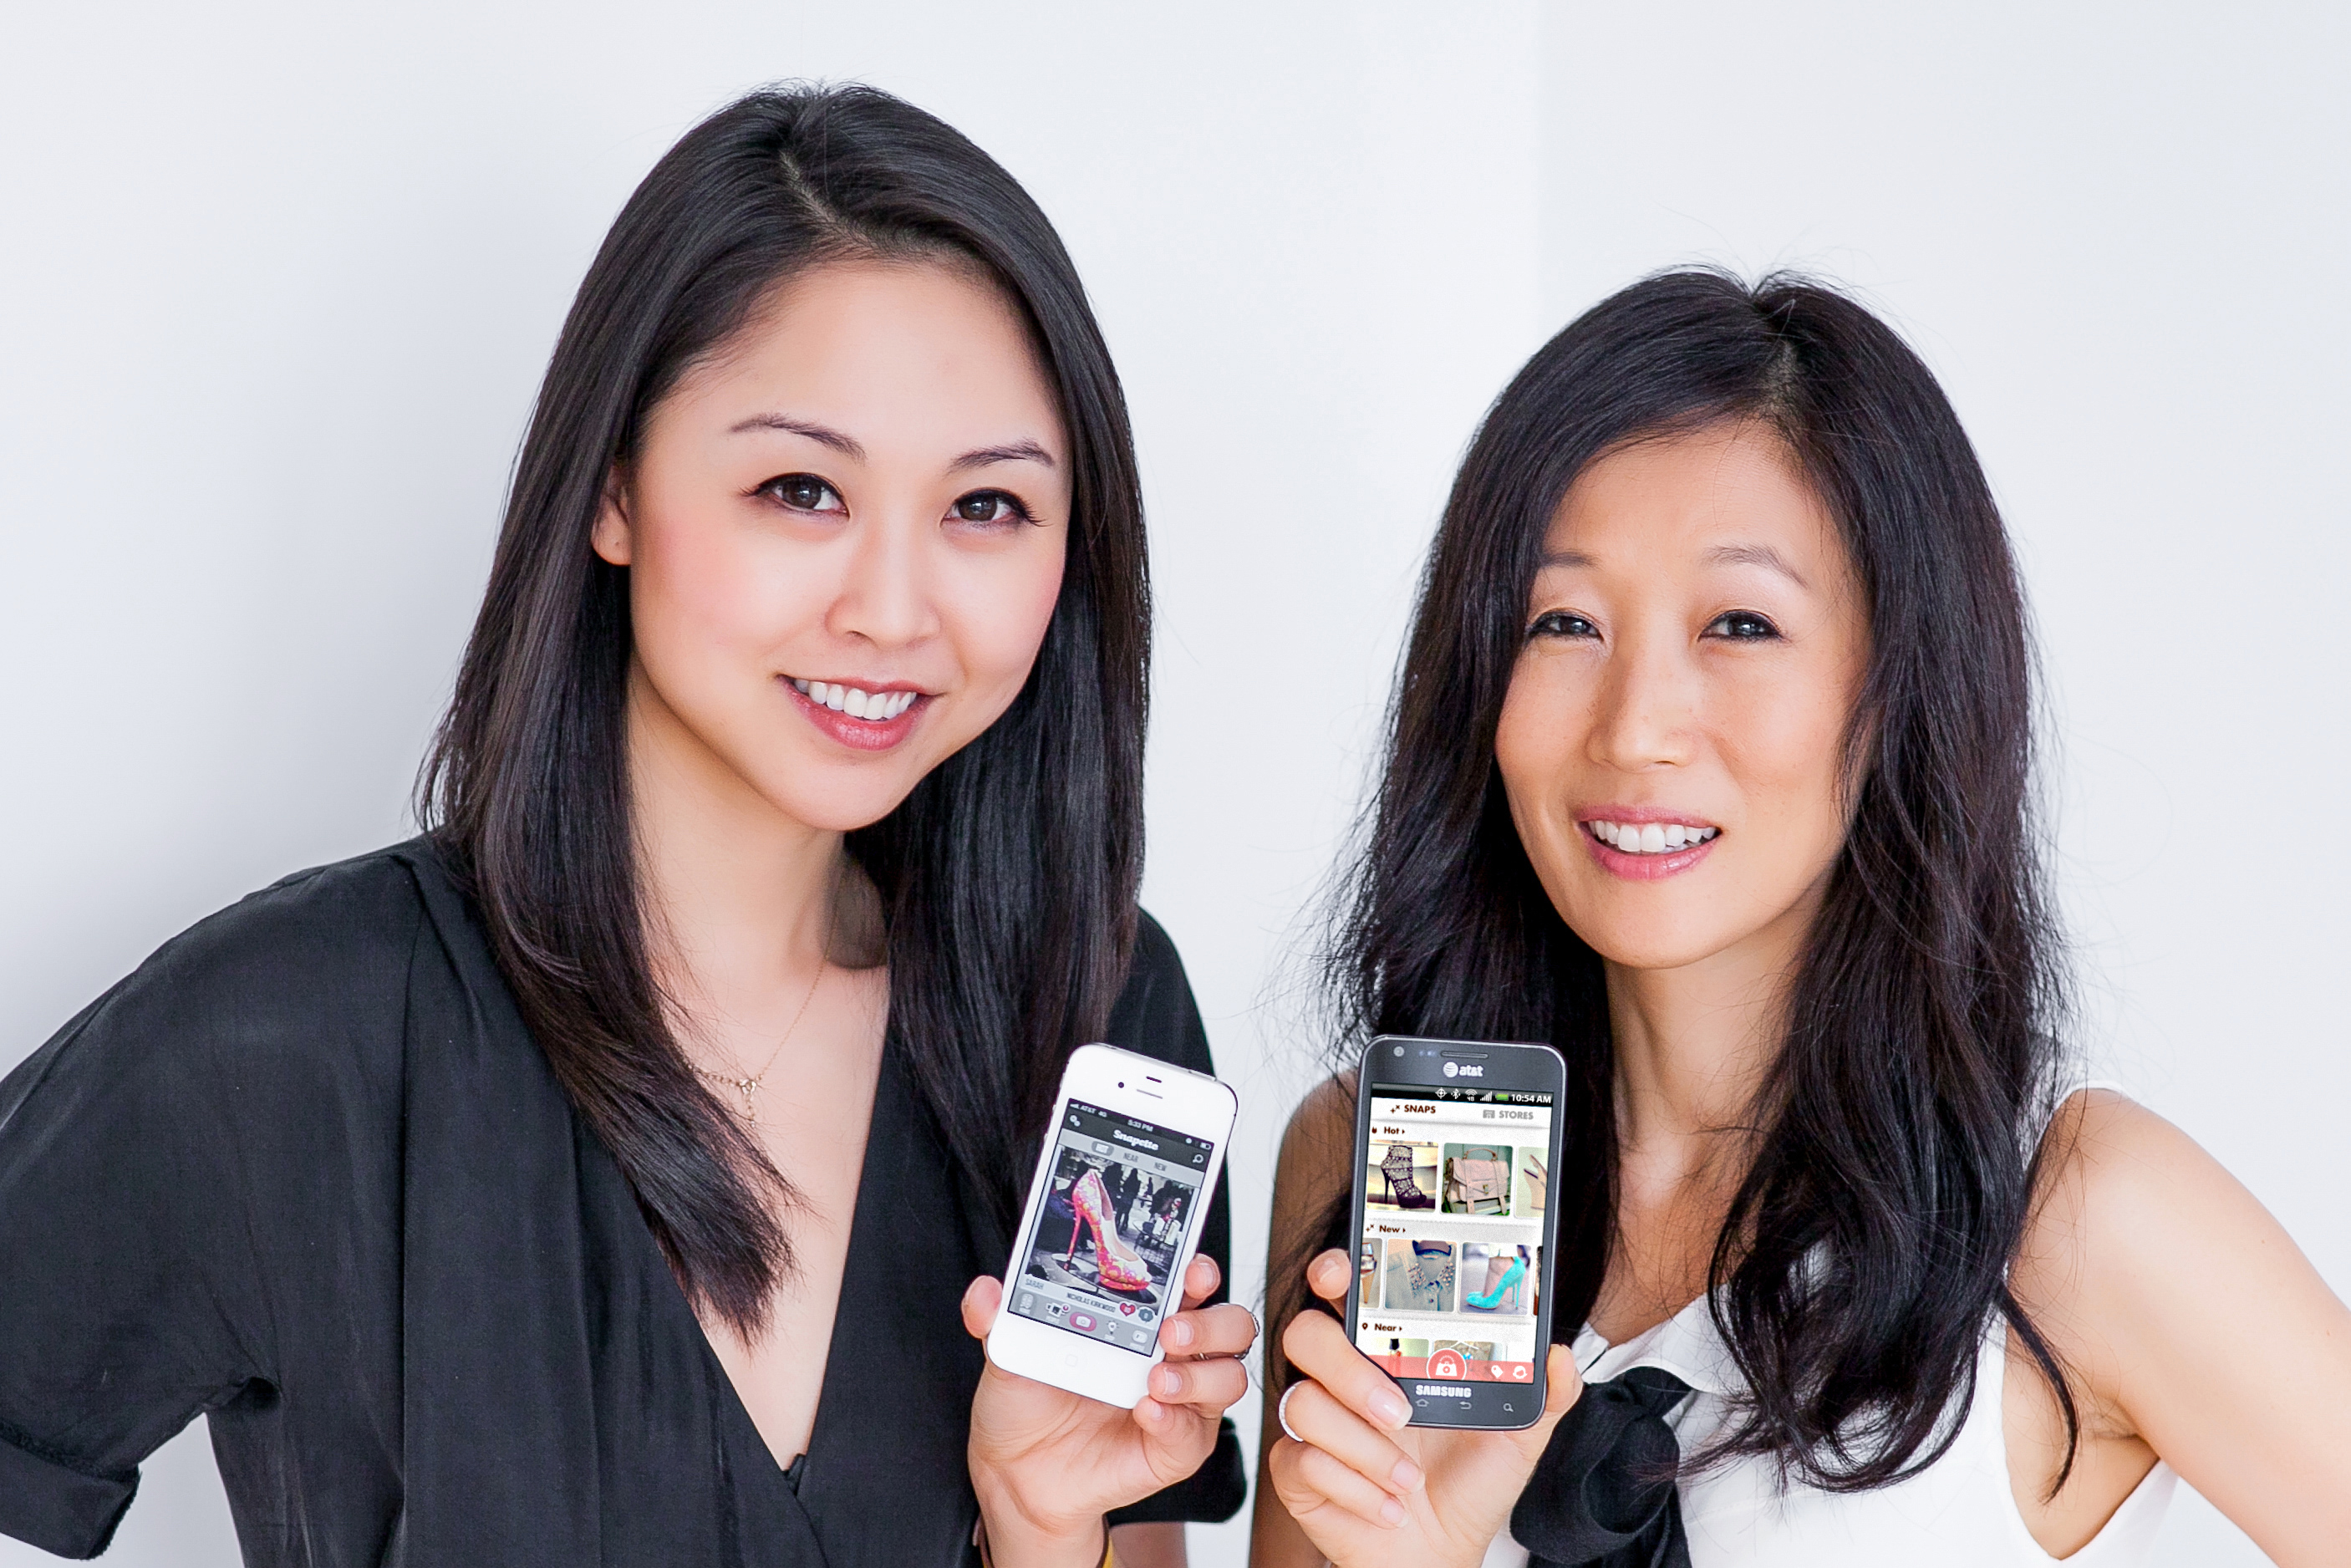 Co-founders Sarah Paiji and Jinhee Kim